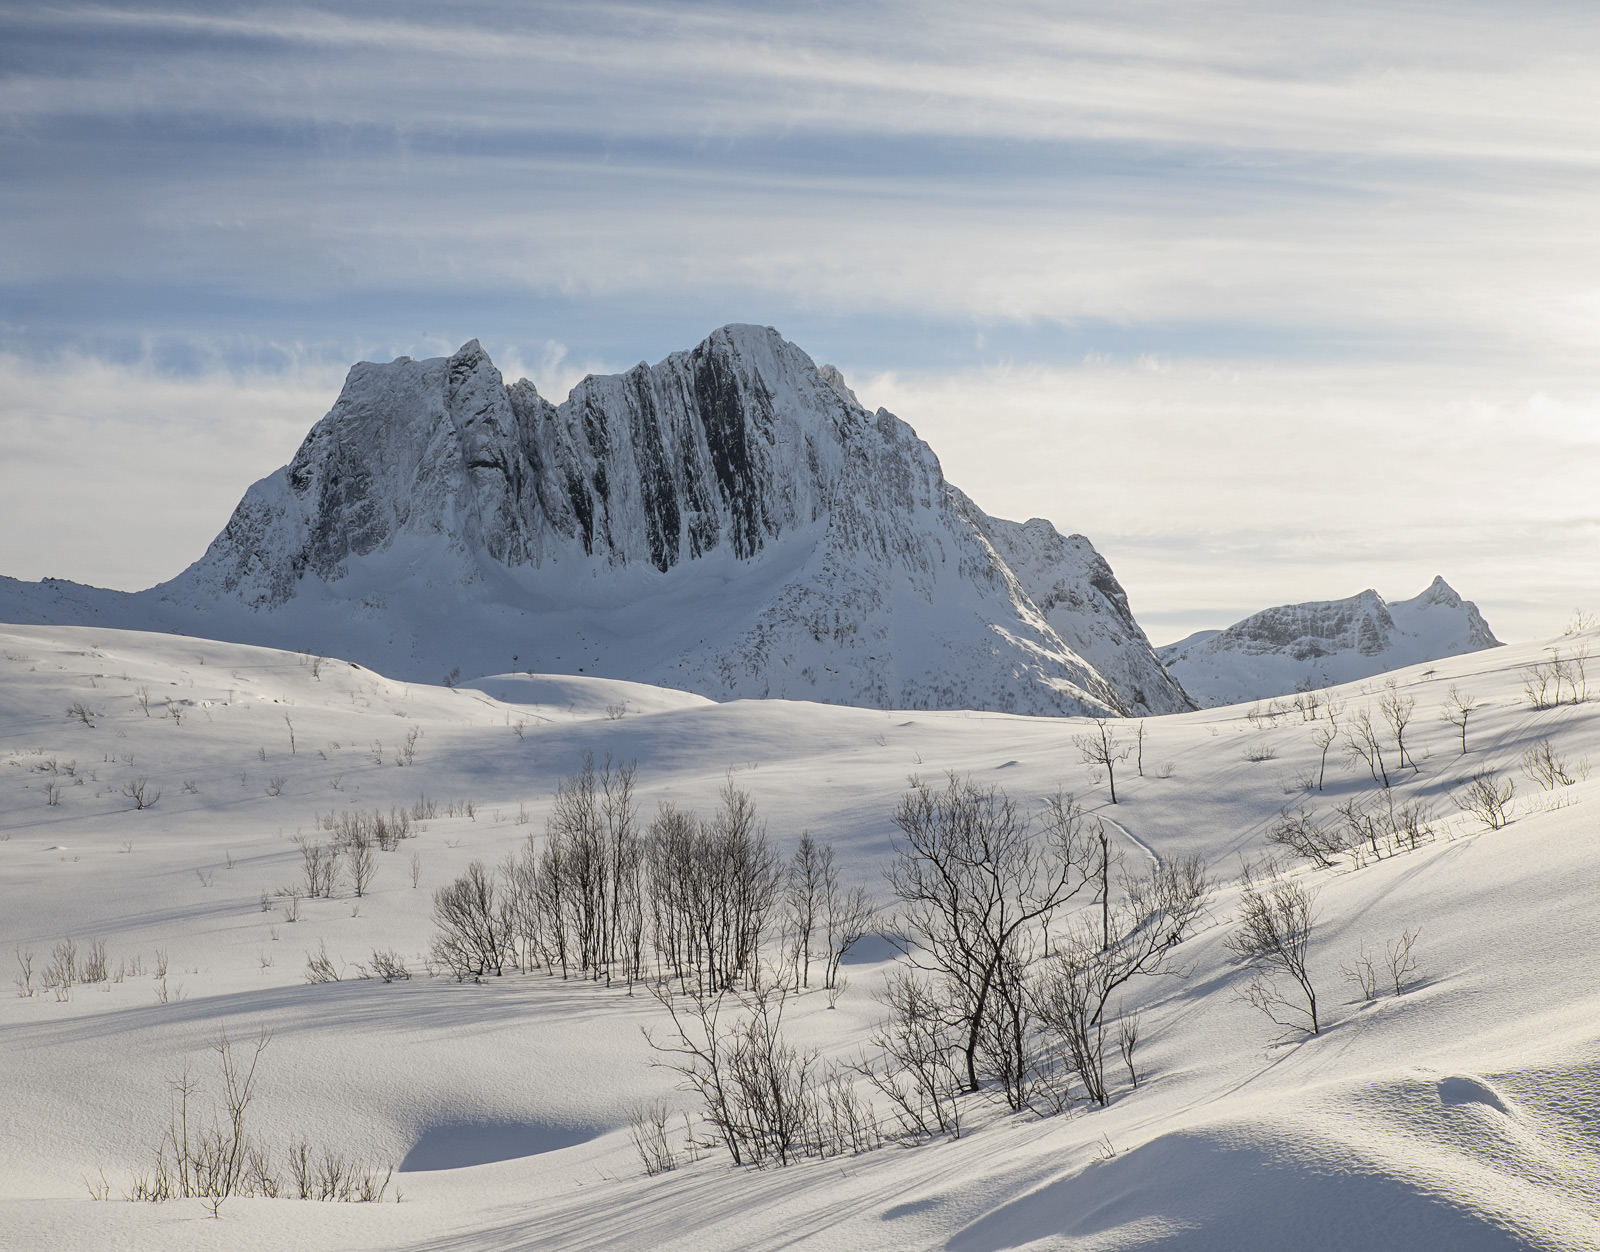 The view across the sunlit snow covered high altitude plains of Eidet toward the imposing peaks of the Senja Island mountains...